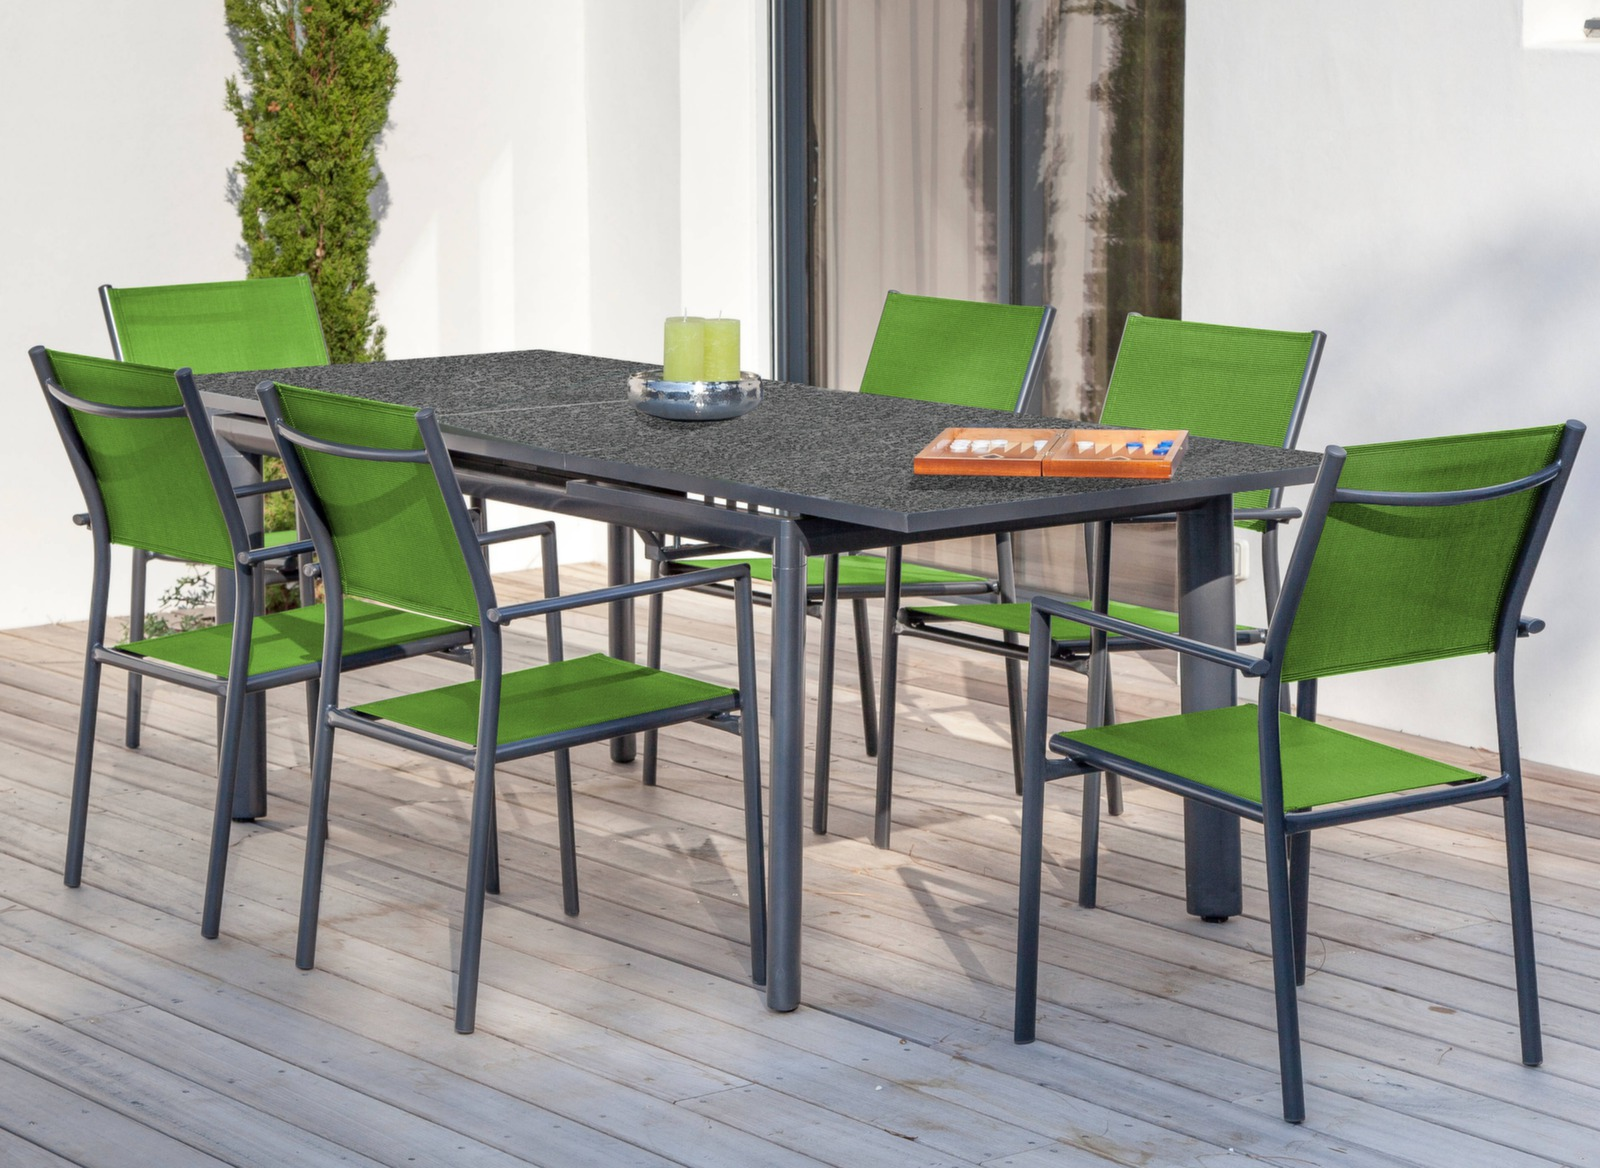 table extensible floride 168 223 cm soldes meubles de jardin pour le repas mobilier oc o et. Black Bedroom Furniture Sets. Home Design Ideas